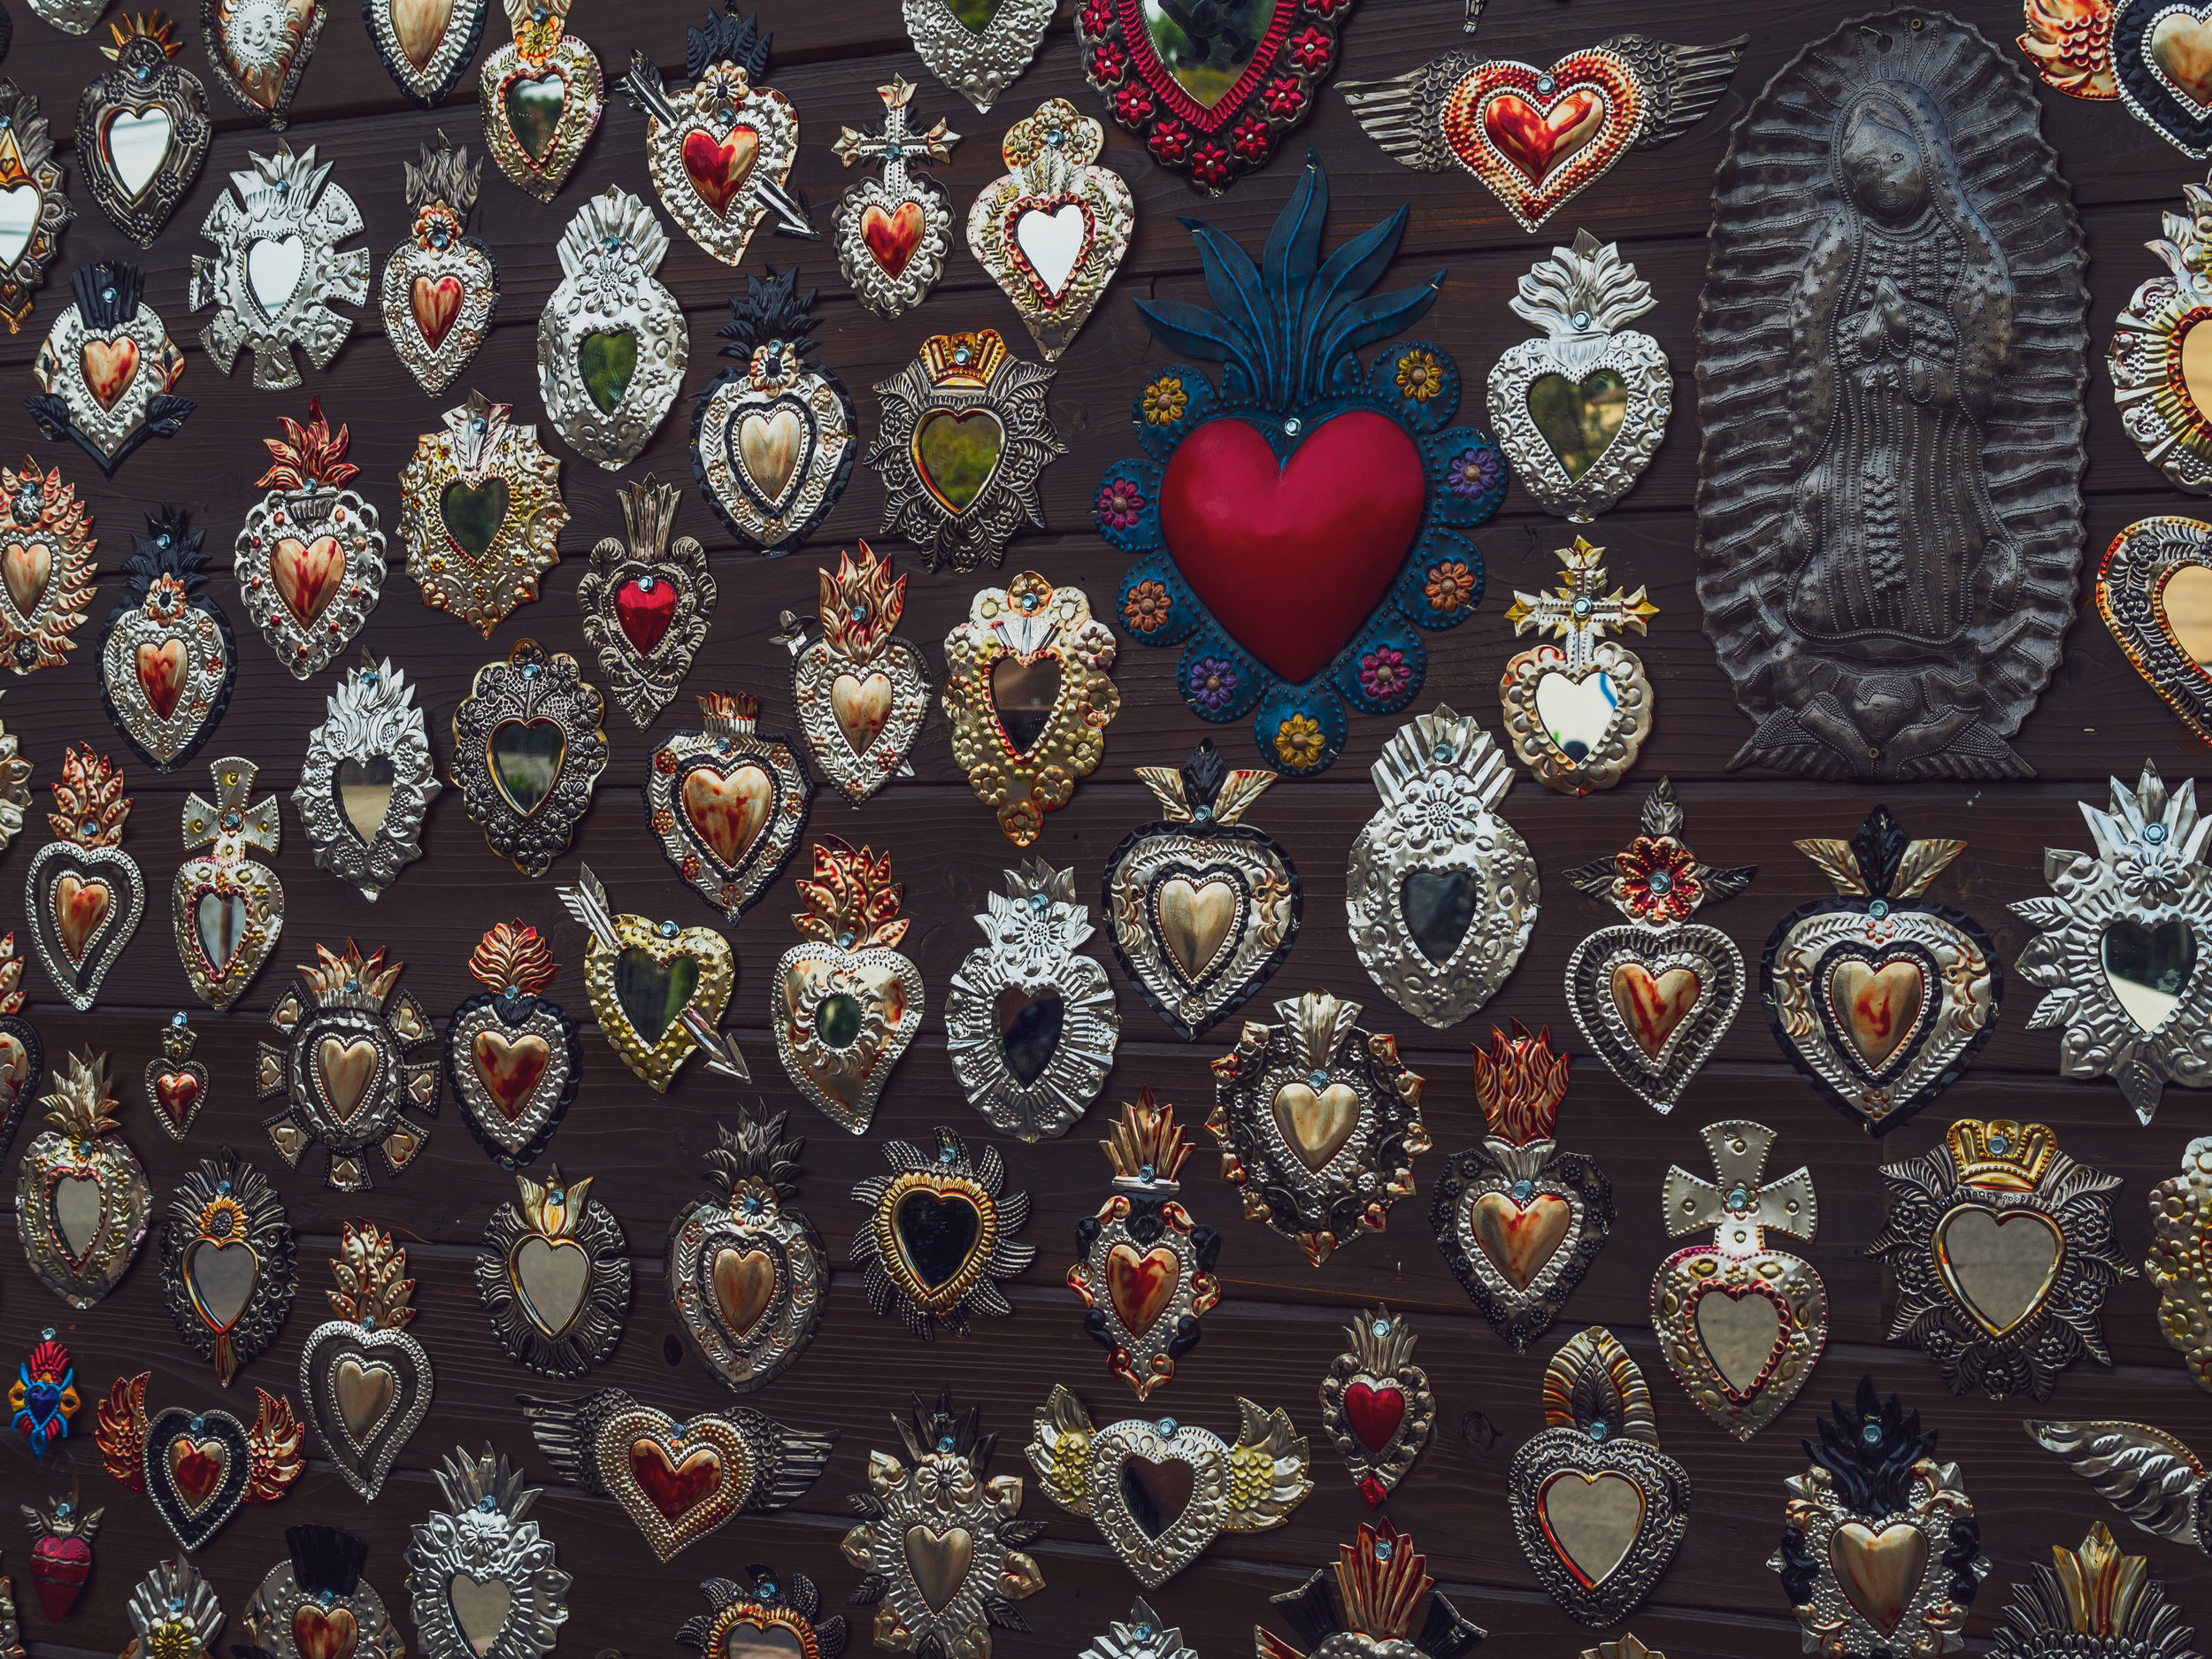 The wall decor outside of Mi Corazon is such a distinctly-Spanish take on the heart wall